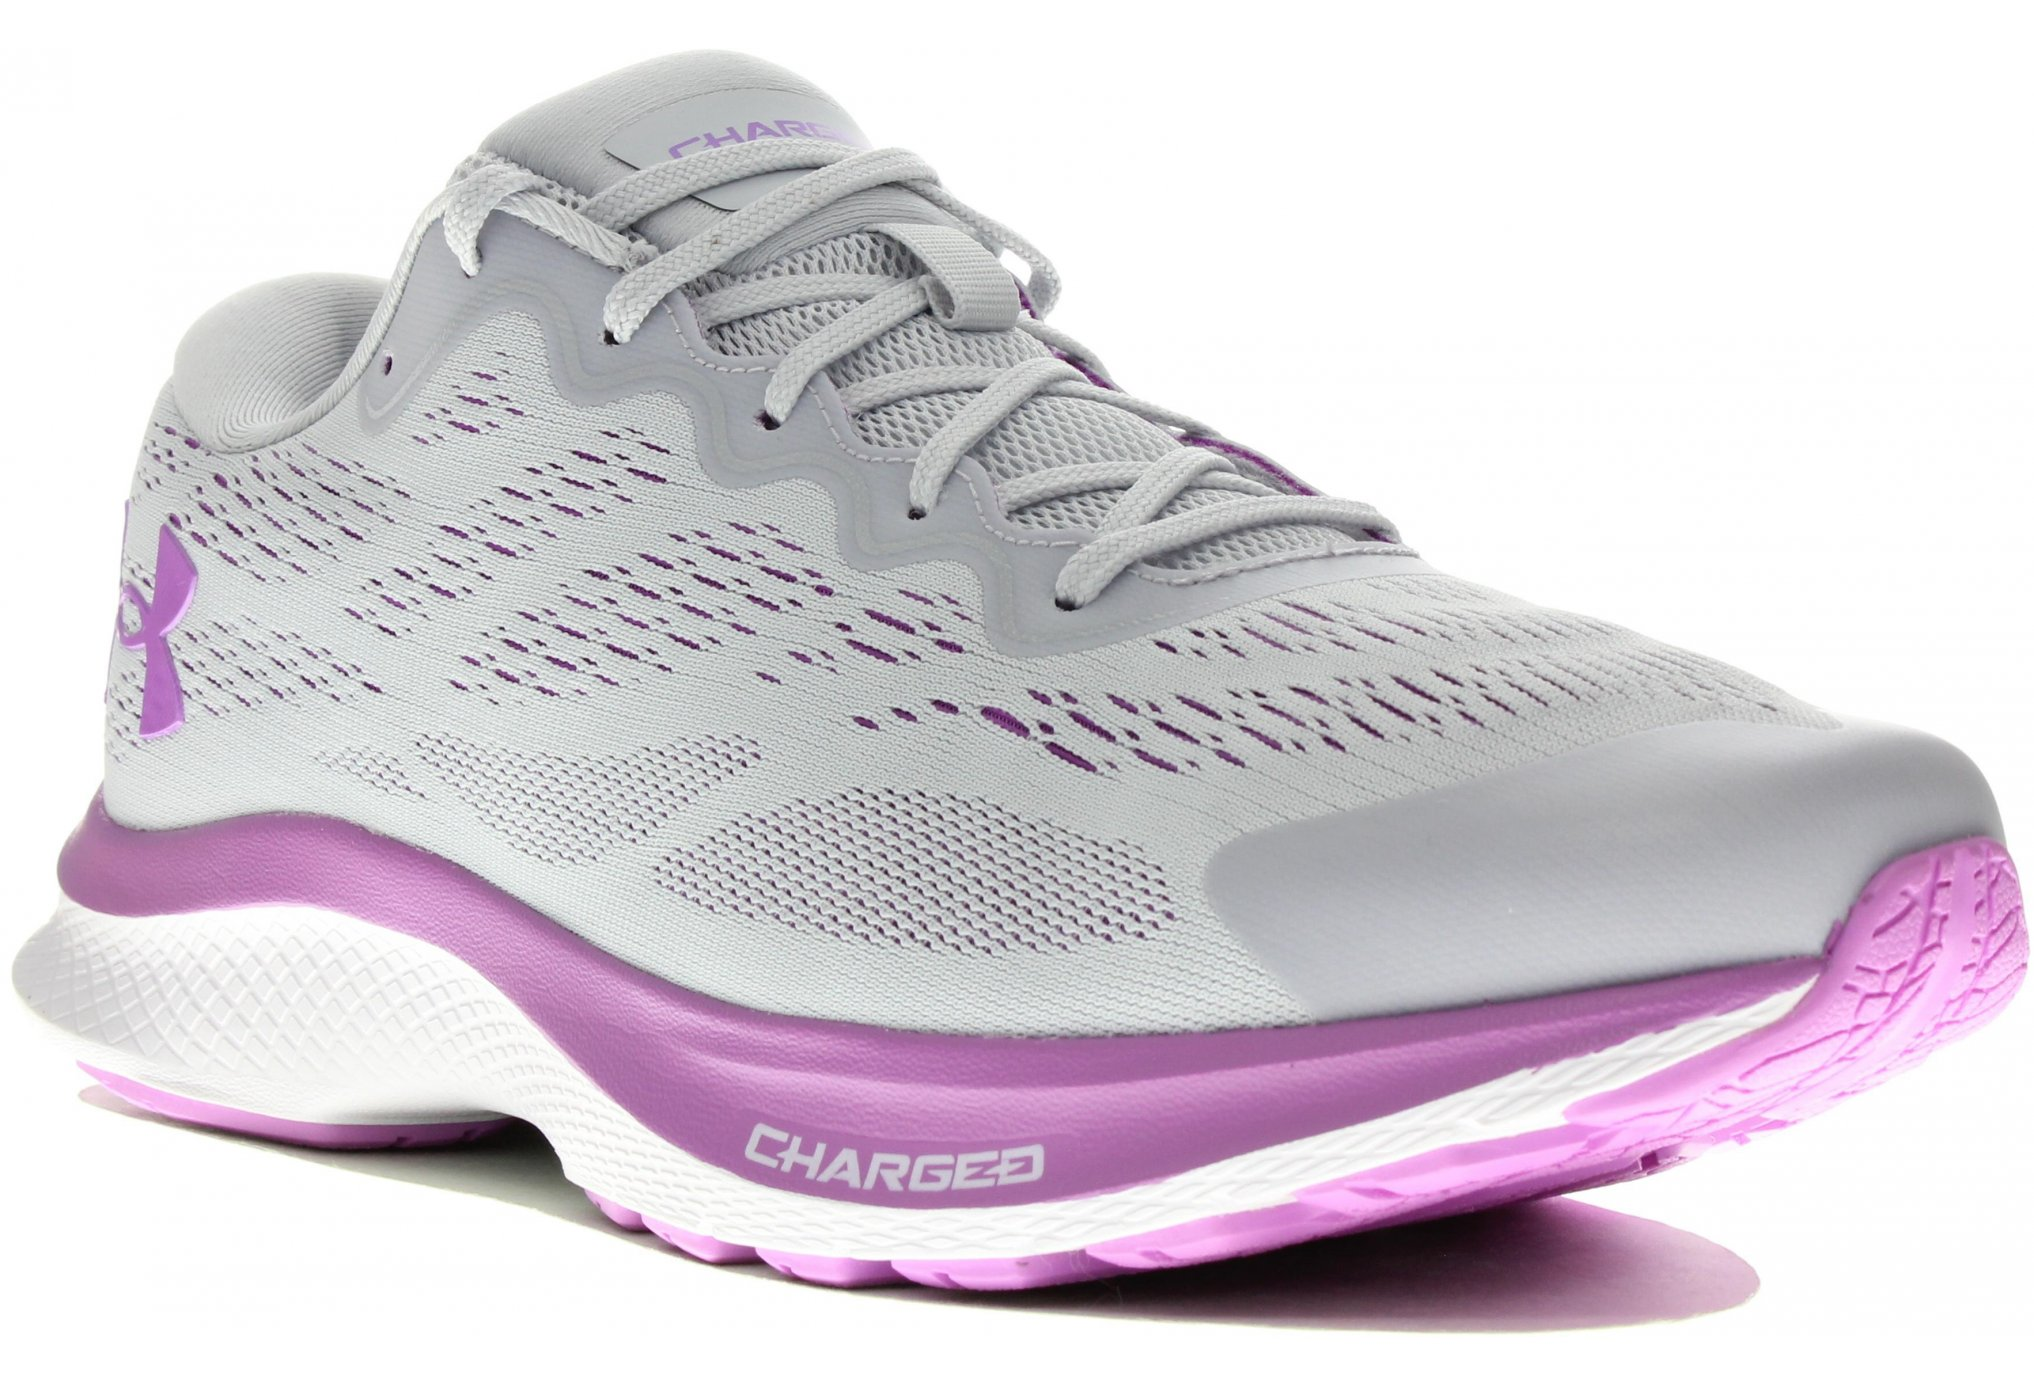 Under Armour Charged Bandit 6 W Chaussures running femme